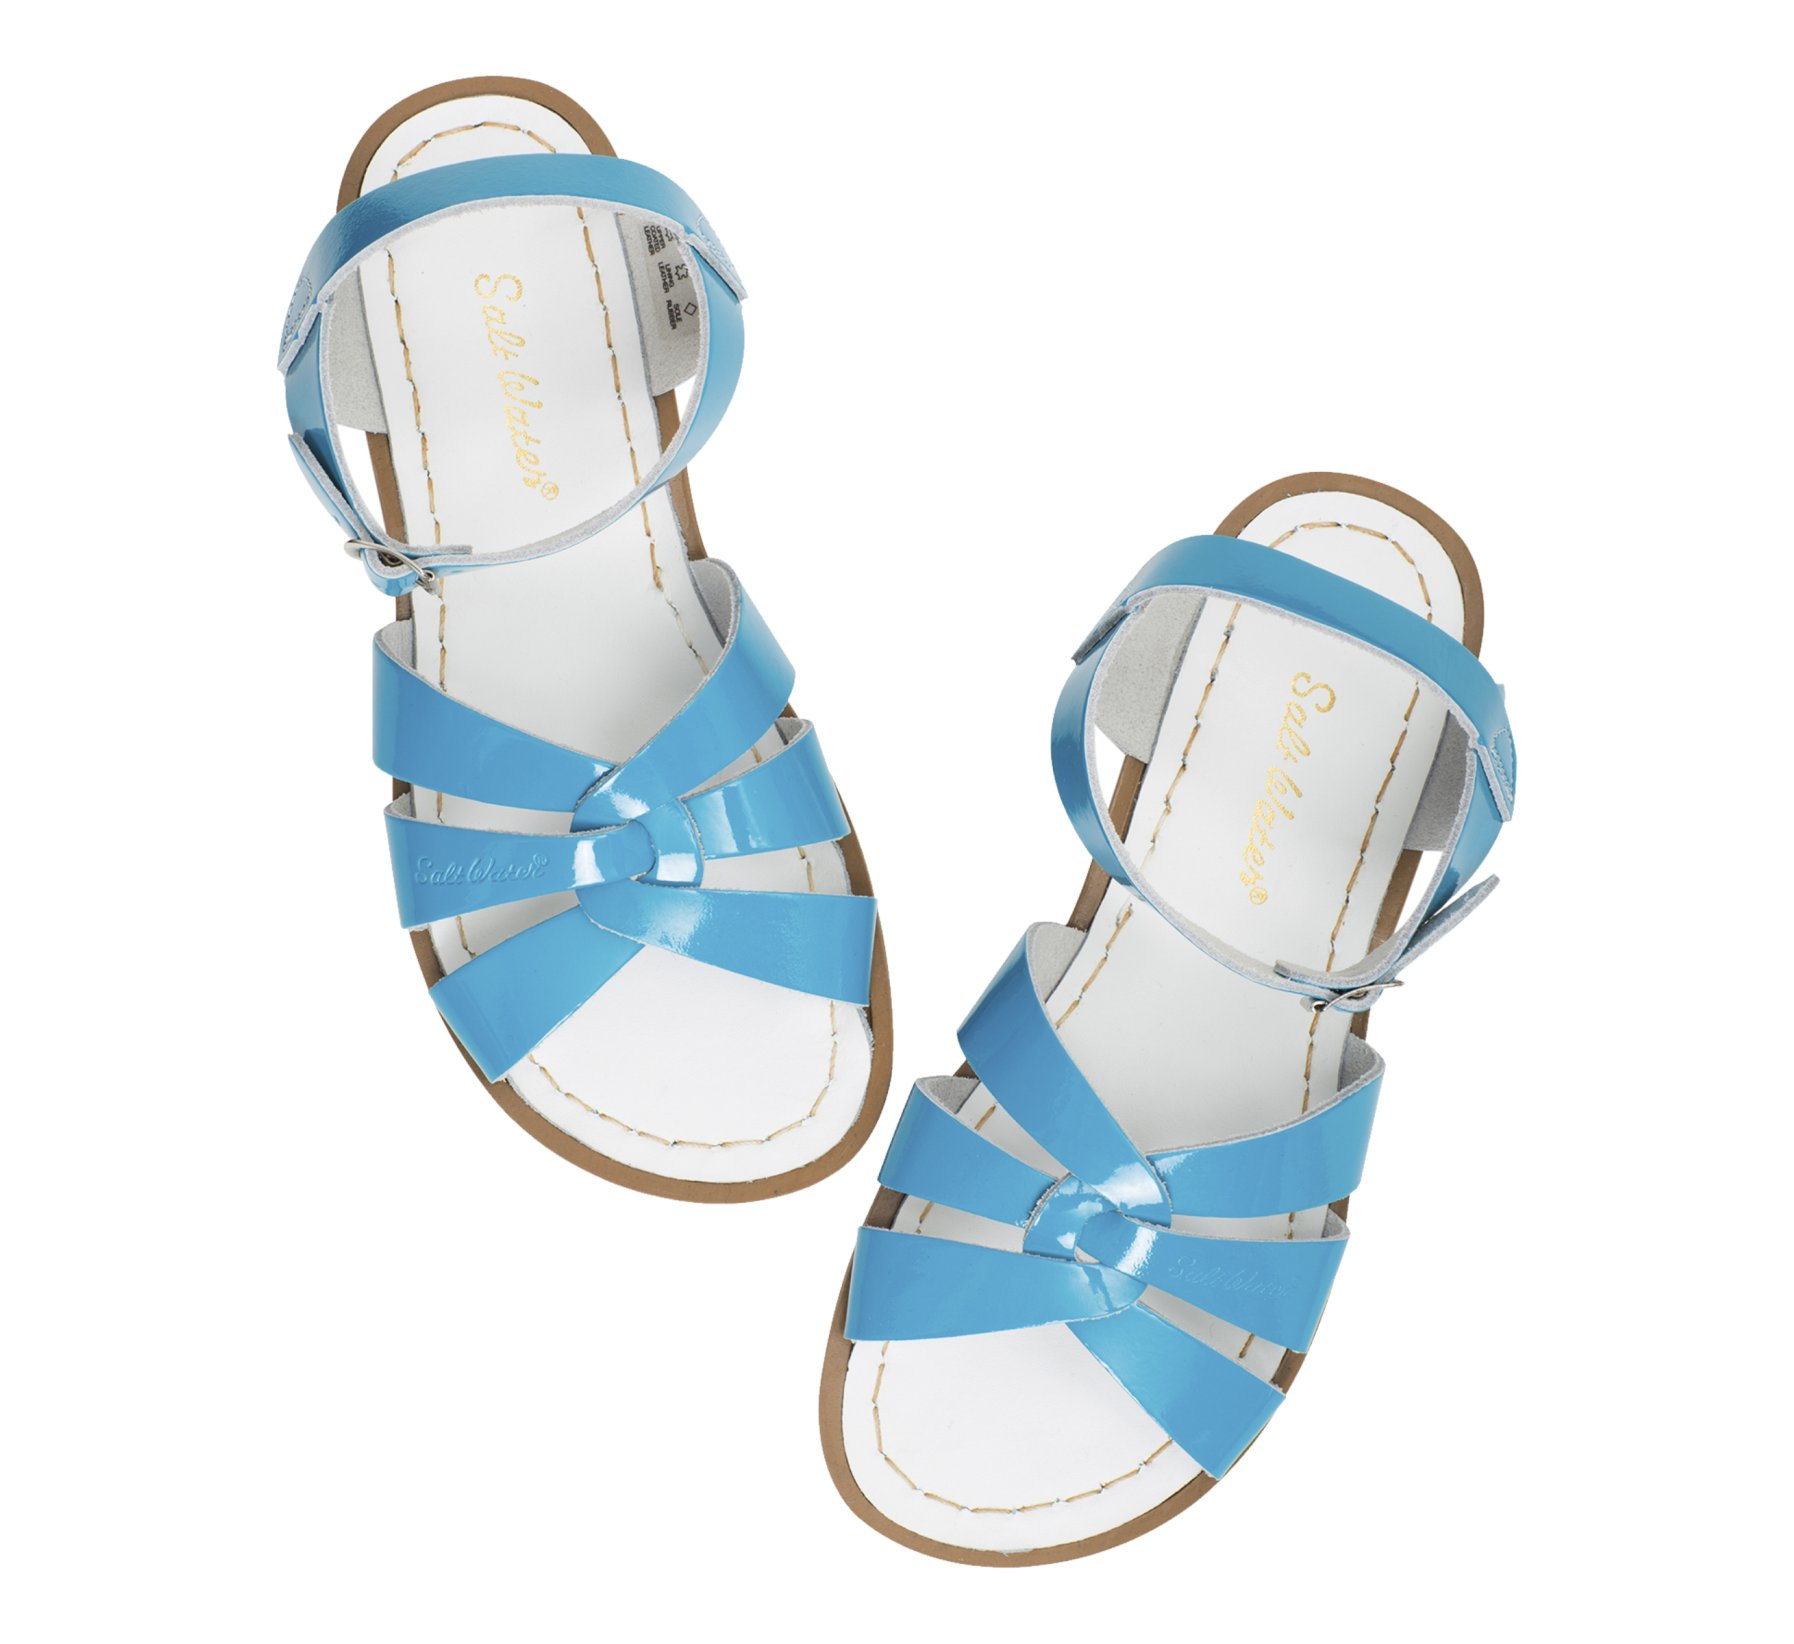 Original Shiny Turquoise  - Salt Water Sandals